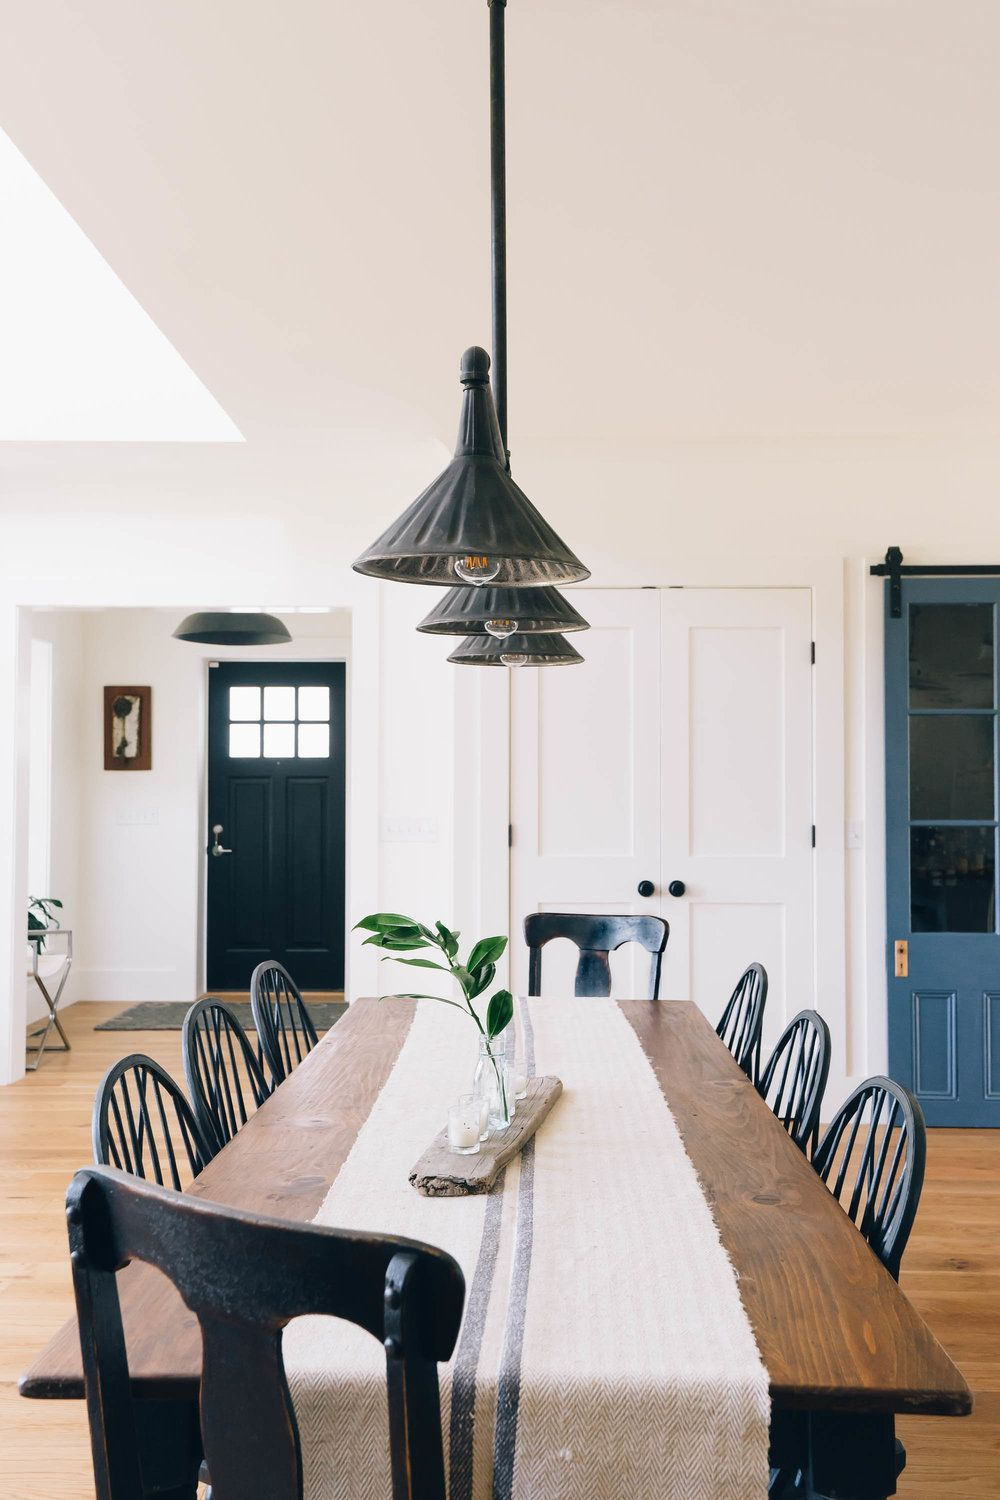 Black Windsor Style Dining Chair Inspiration And Product Round Up Something For Every Bu Modern Farmhouse Dining Farmhouse Dining Rooms Decor Farmhouse Dining